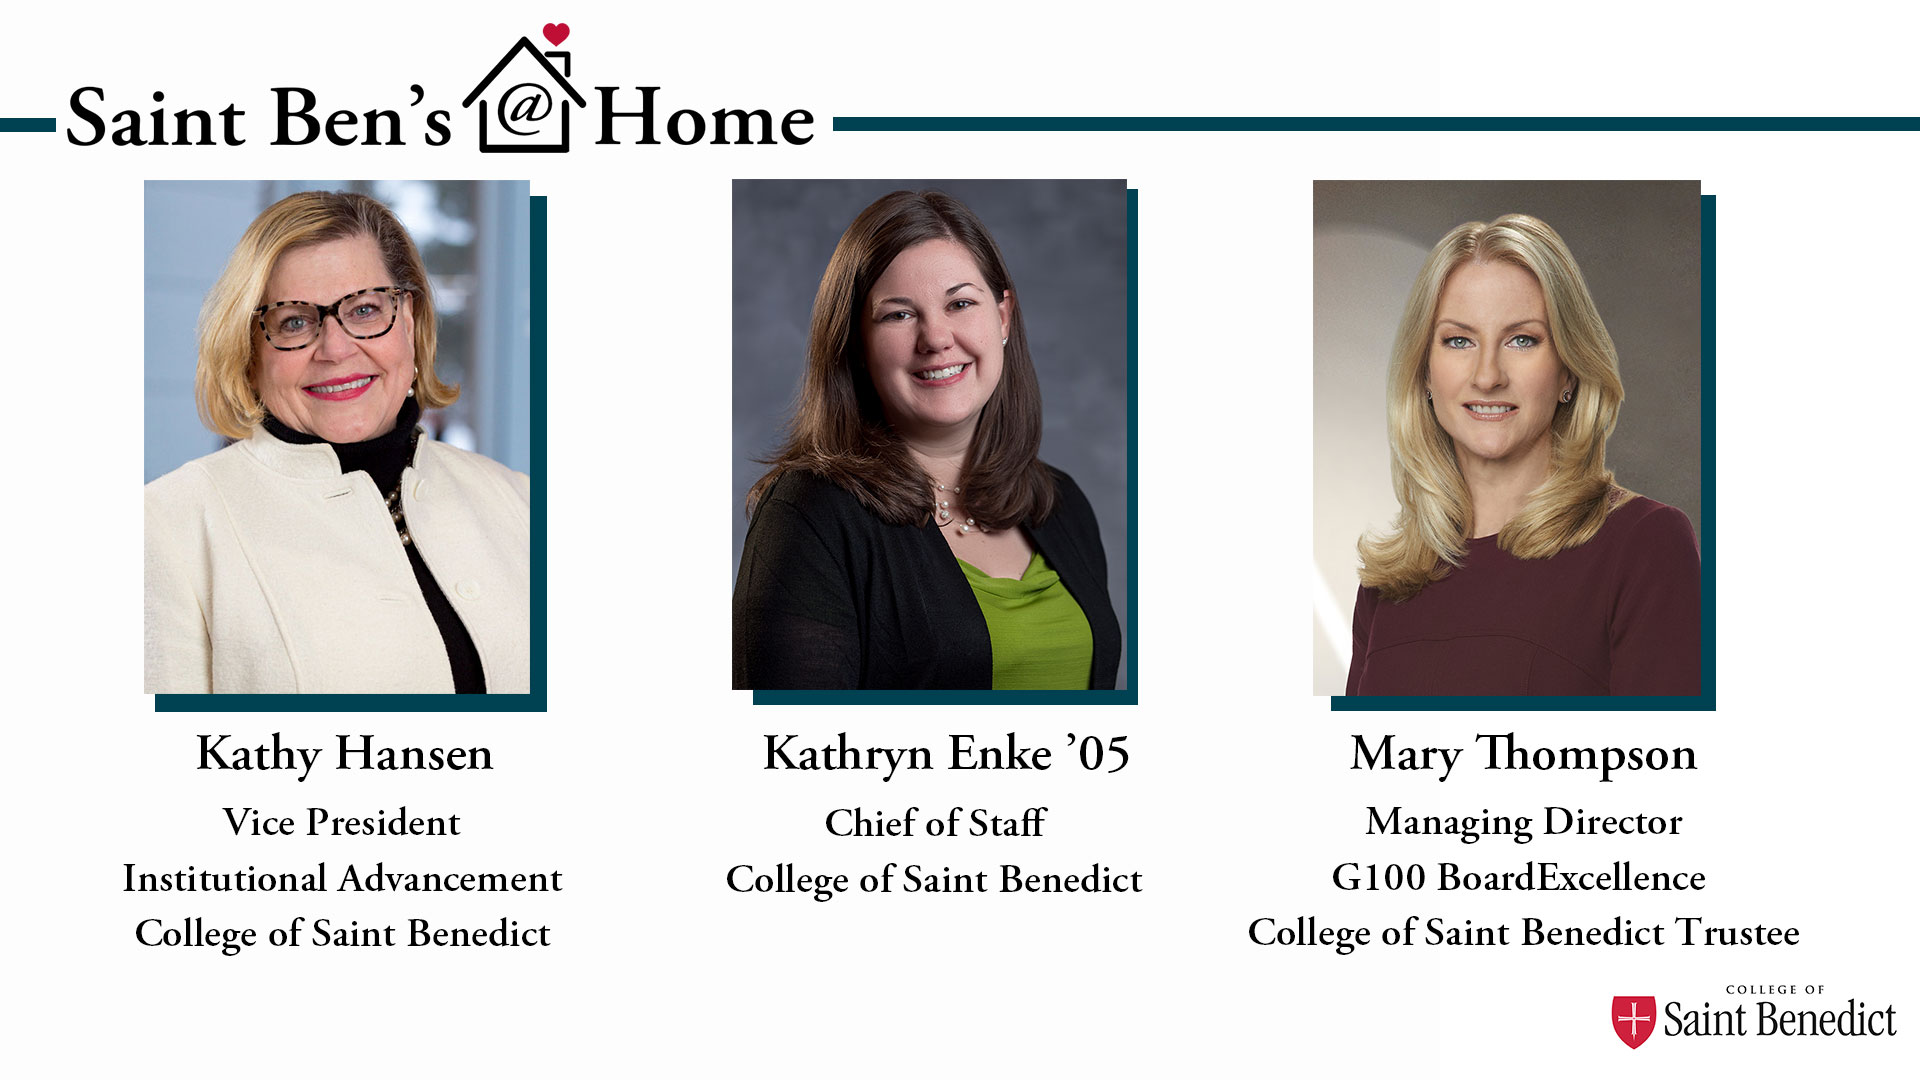 Image for Saint Ben's @ Home: What it Means to be a College for Women webinar